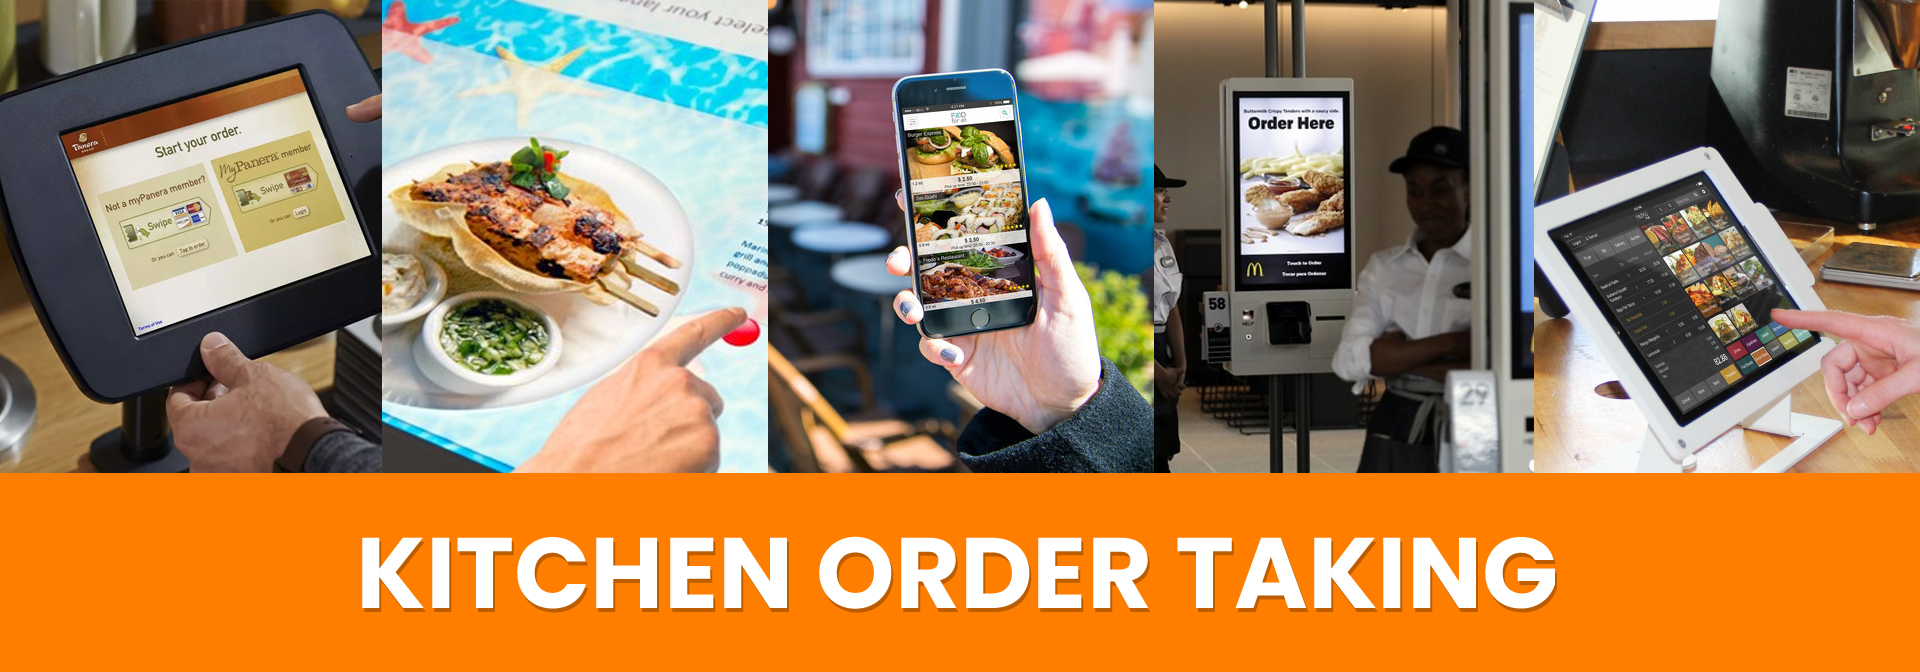 Kitchen Order Taking System